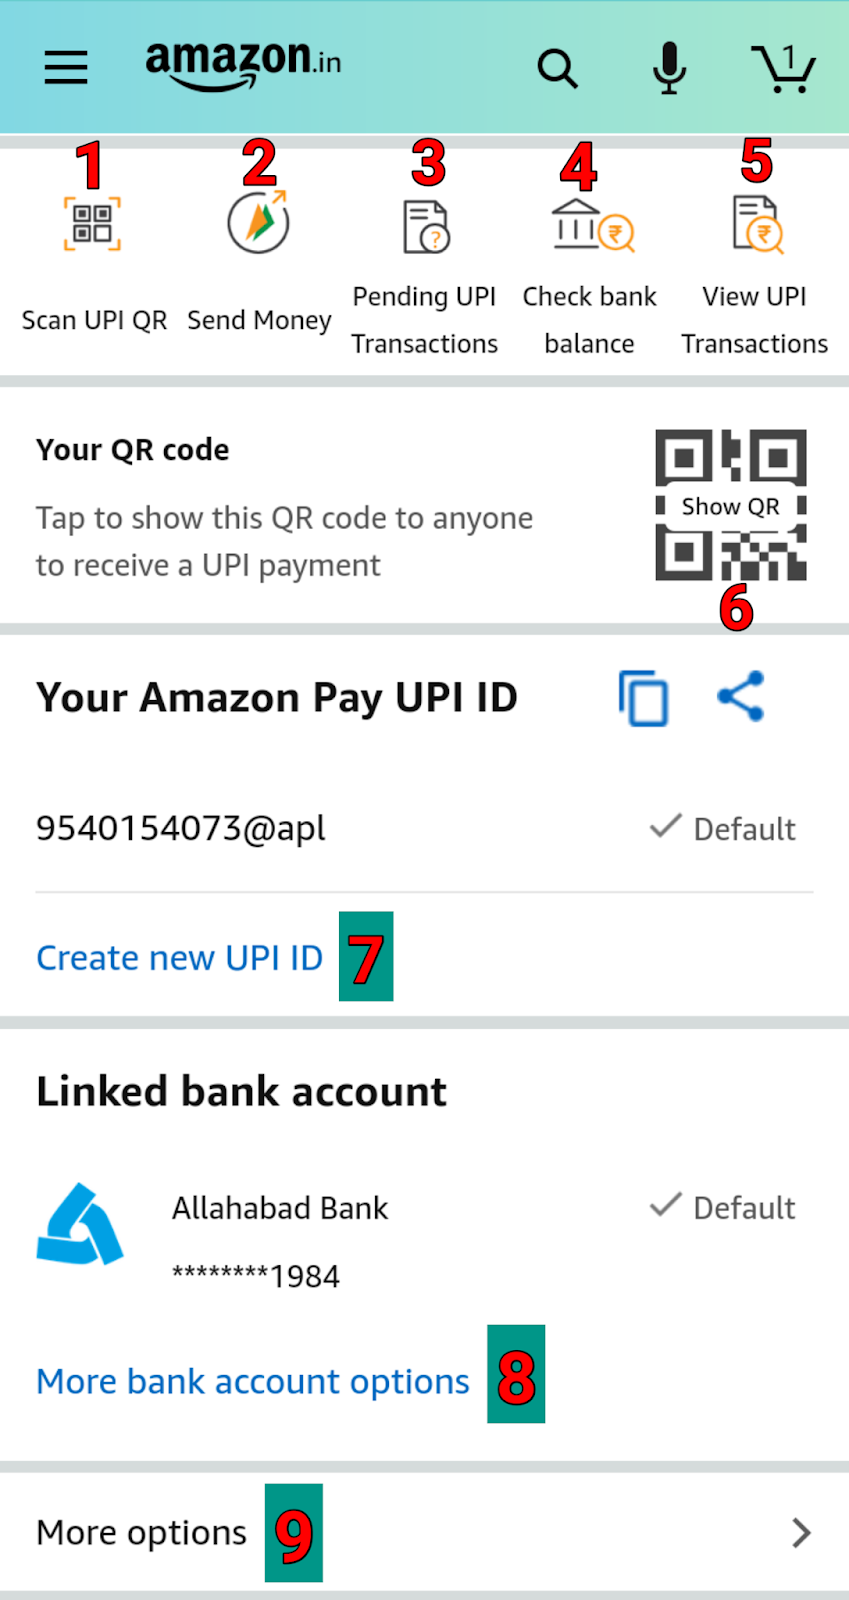 How to create amazon pay upi- Amazon pay upi sing up कैसे कऱे